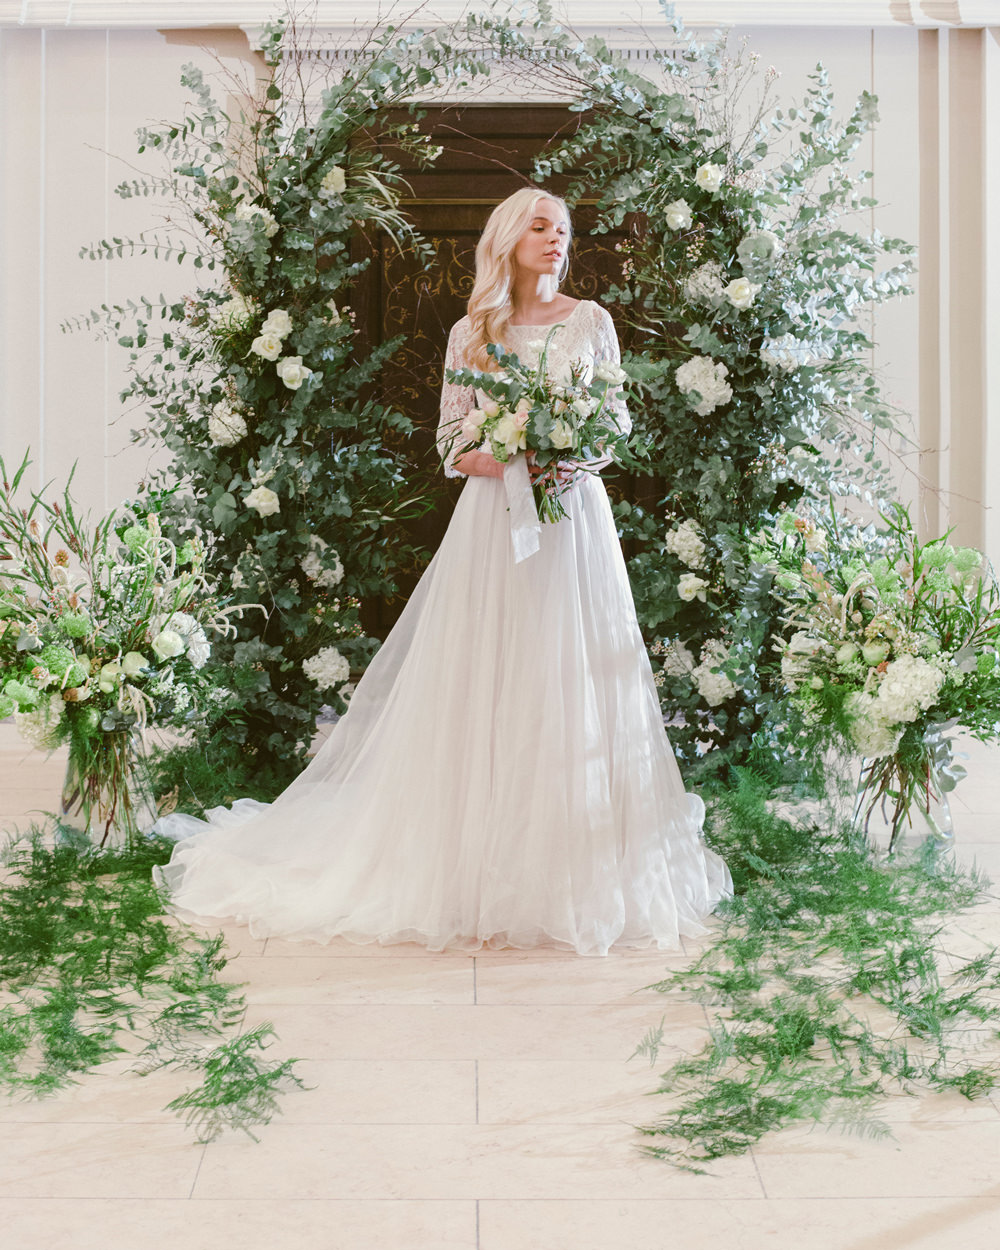 Flower Arch Backdrop Aisle Ceremony Flowers Greenery Foliage Blush Rose Whimsical Elegant Wedding Ideas Mandorla London